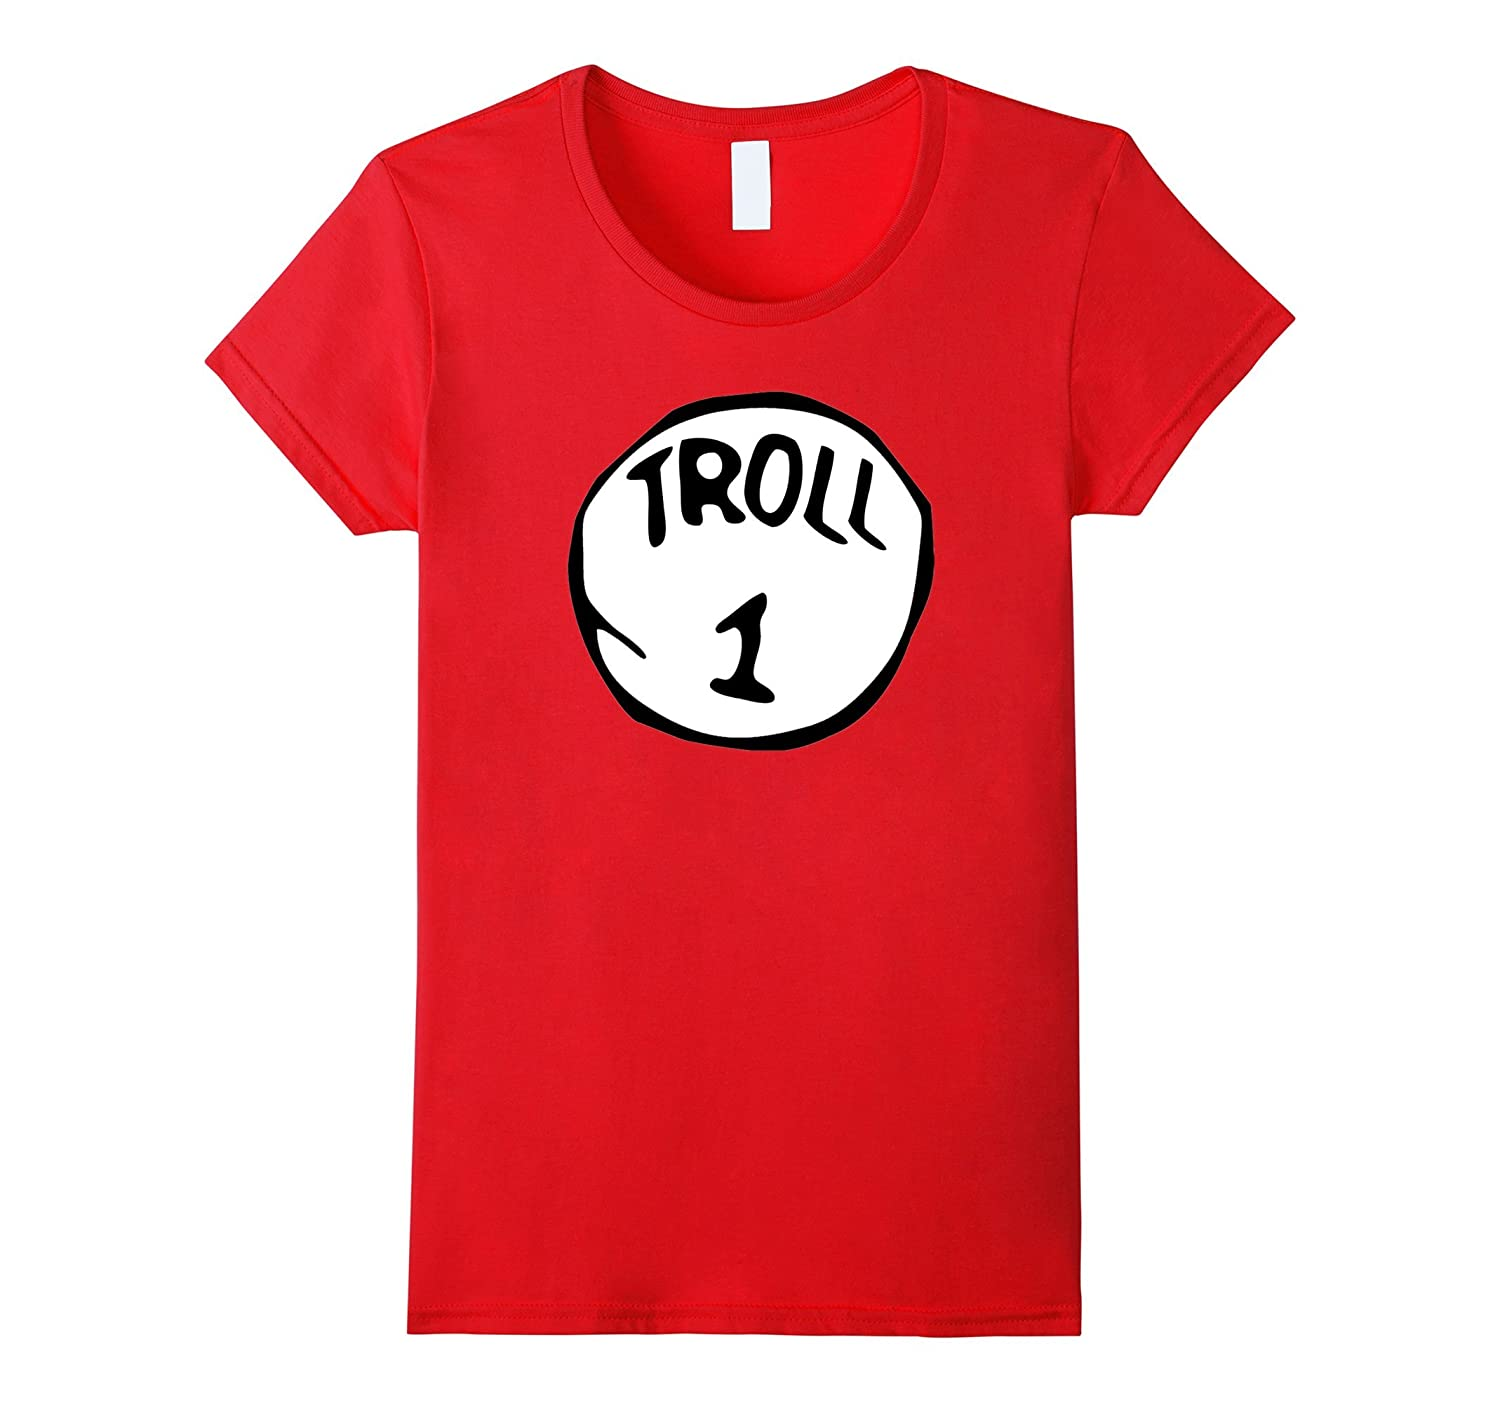 Troll 1 Monster Scary Halloween disfraz duende Ogre camiseta rosso ...